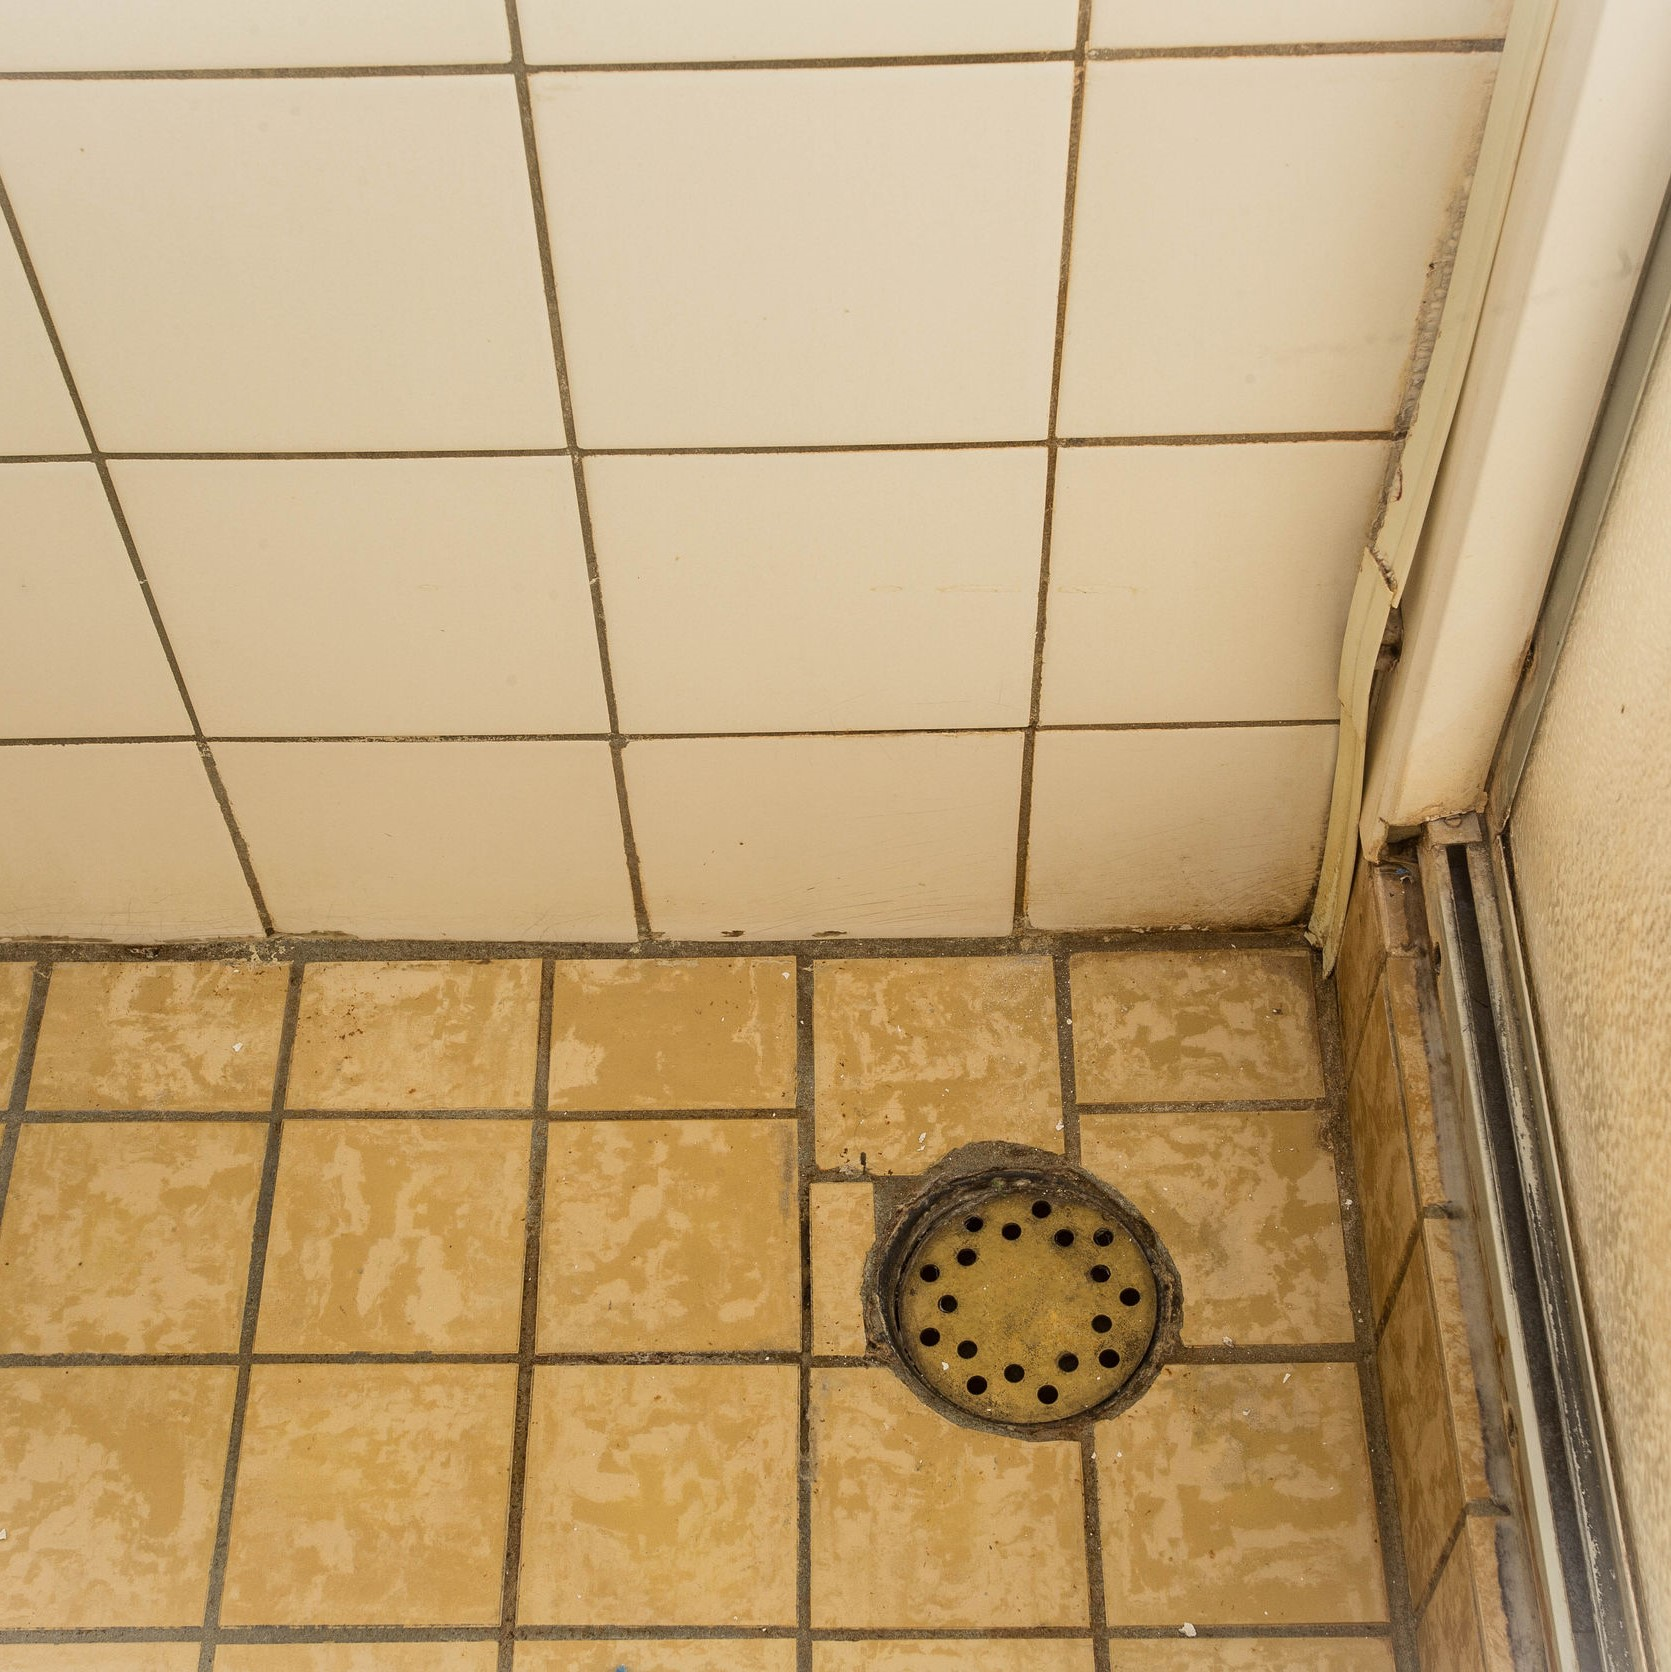 An old shower drain that needs some cleaning.